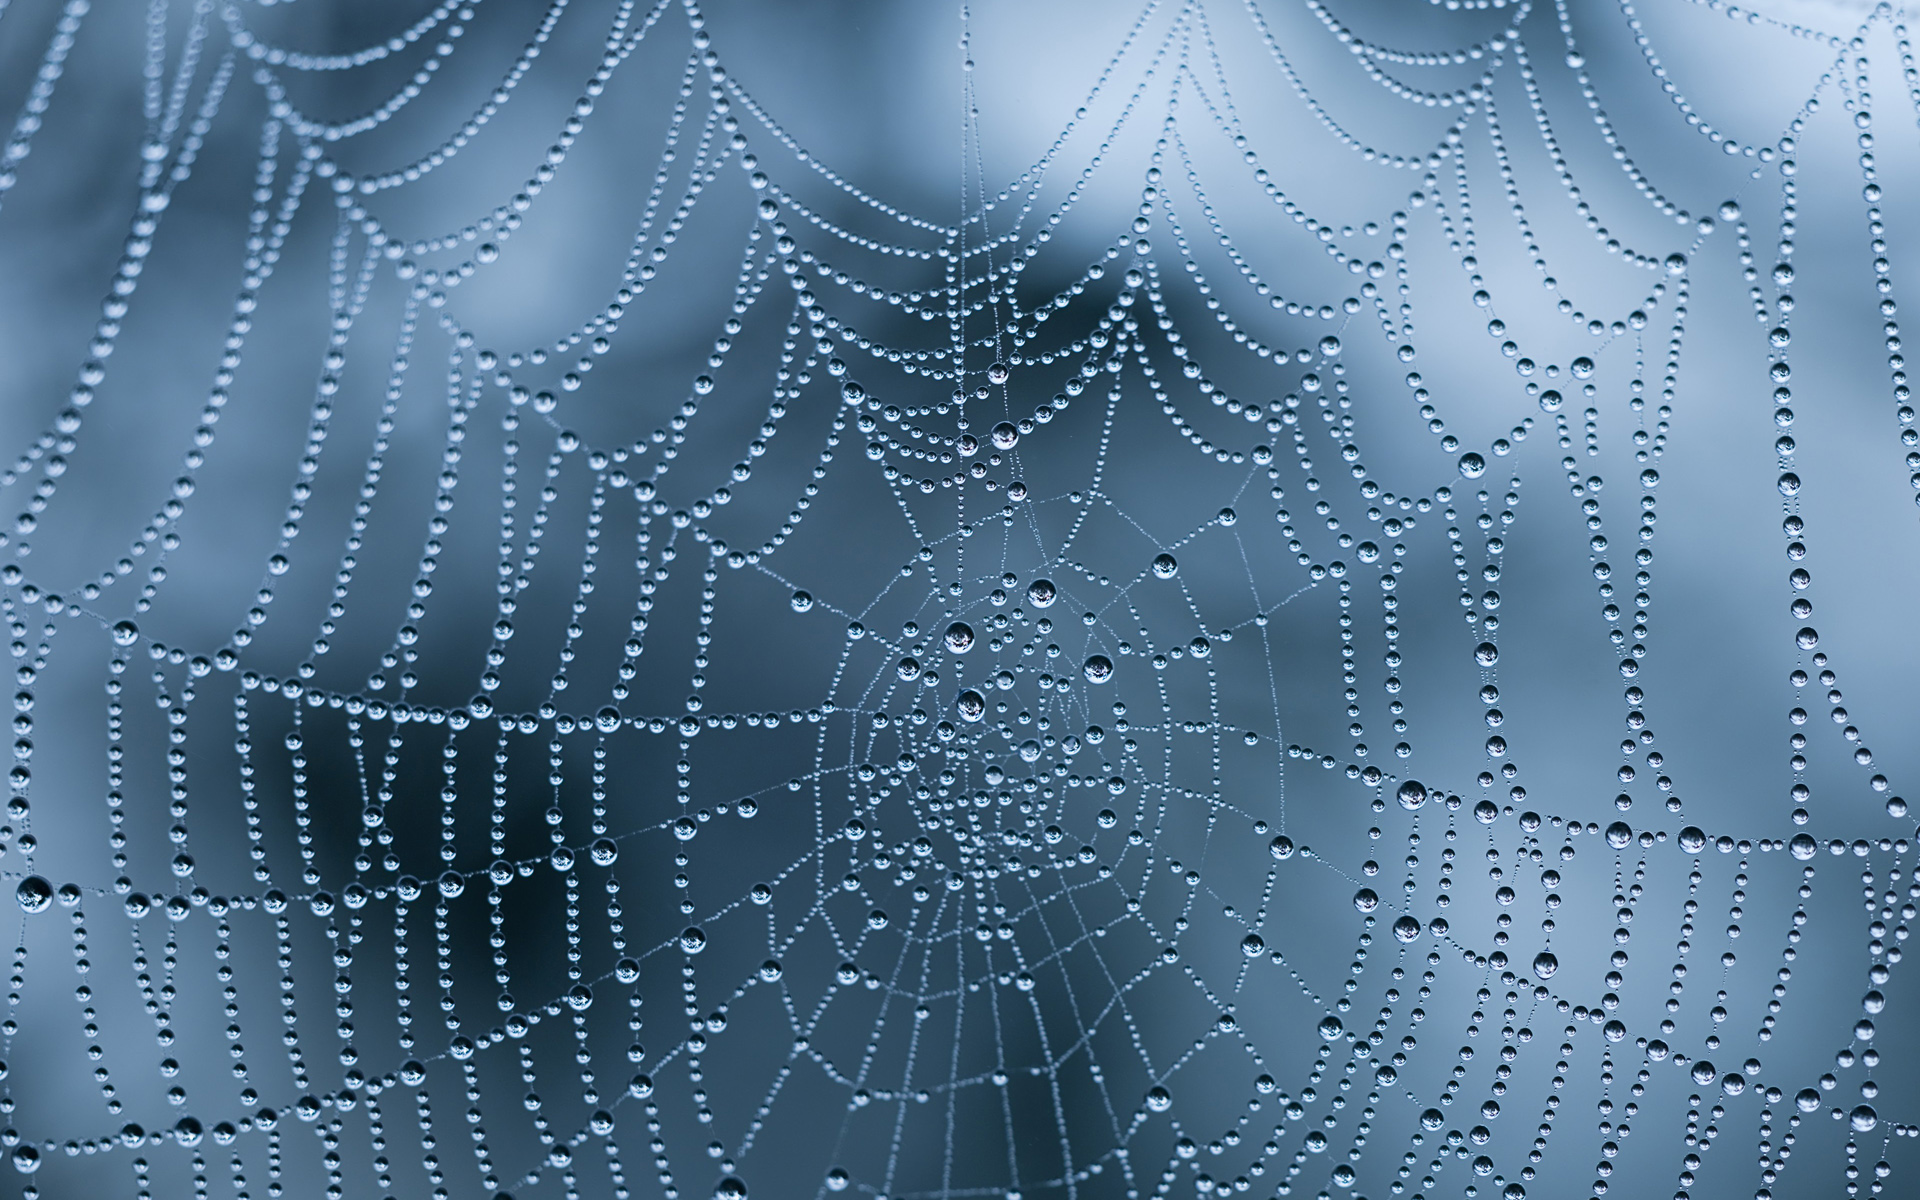 spiderweb wallpapers with water drops and ice HD Wallpapers 1920x1200